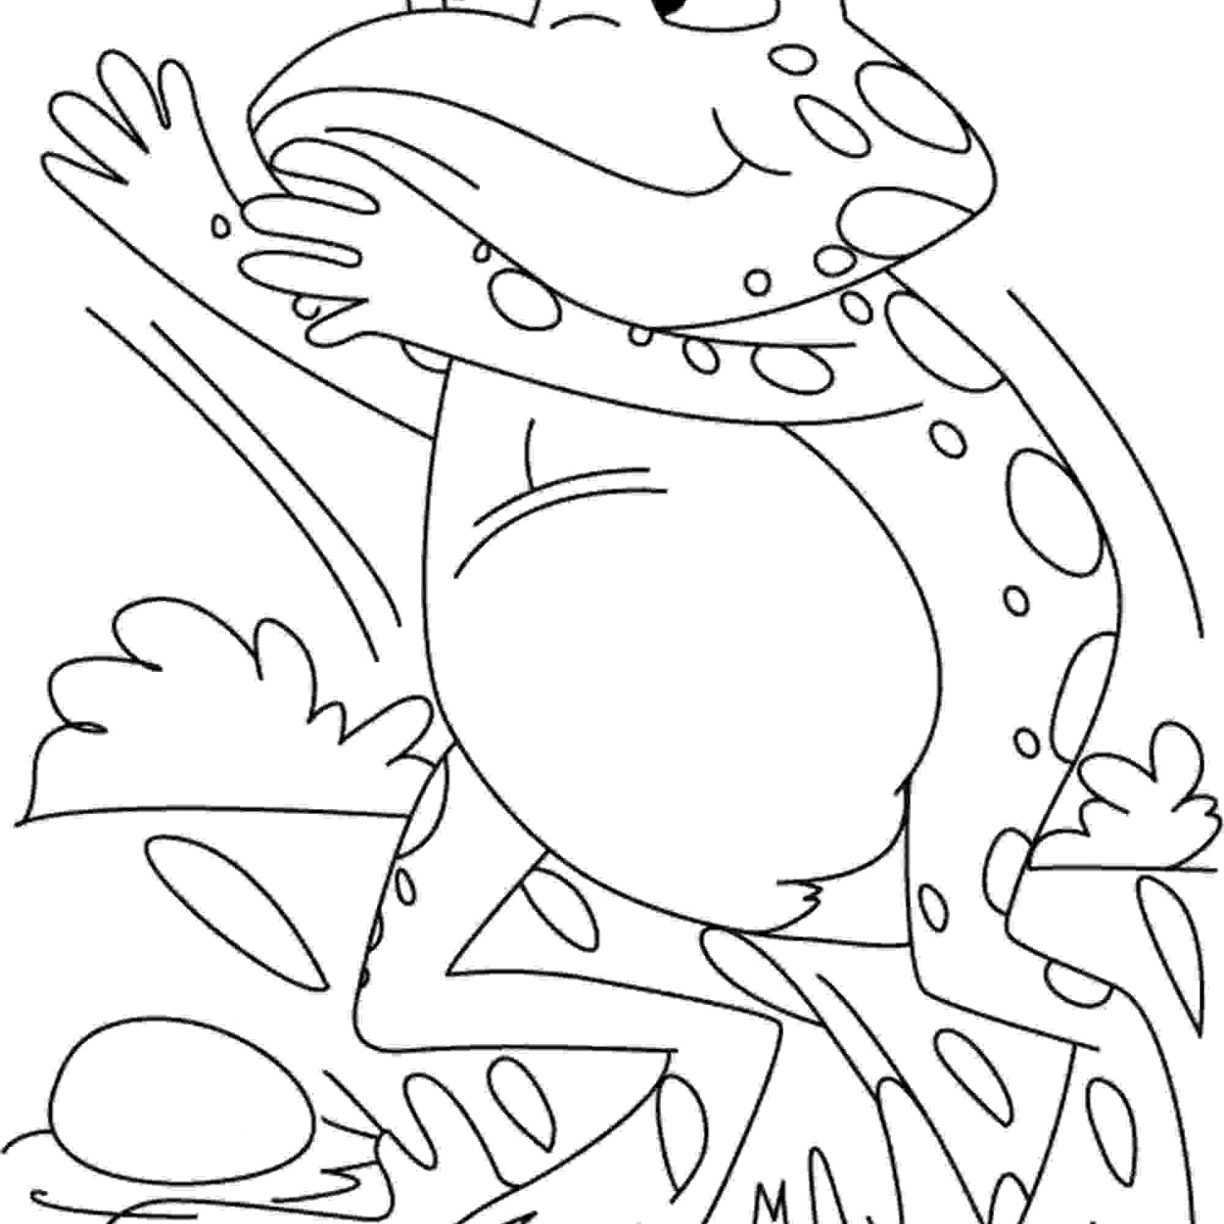 green tree frog coloring page tree frog on branch coloring page free frog coloring coloring tree green page frog